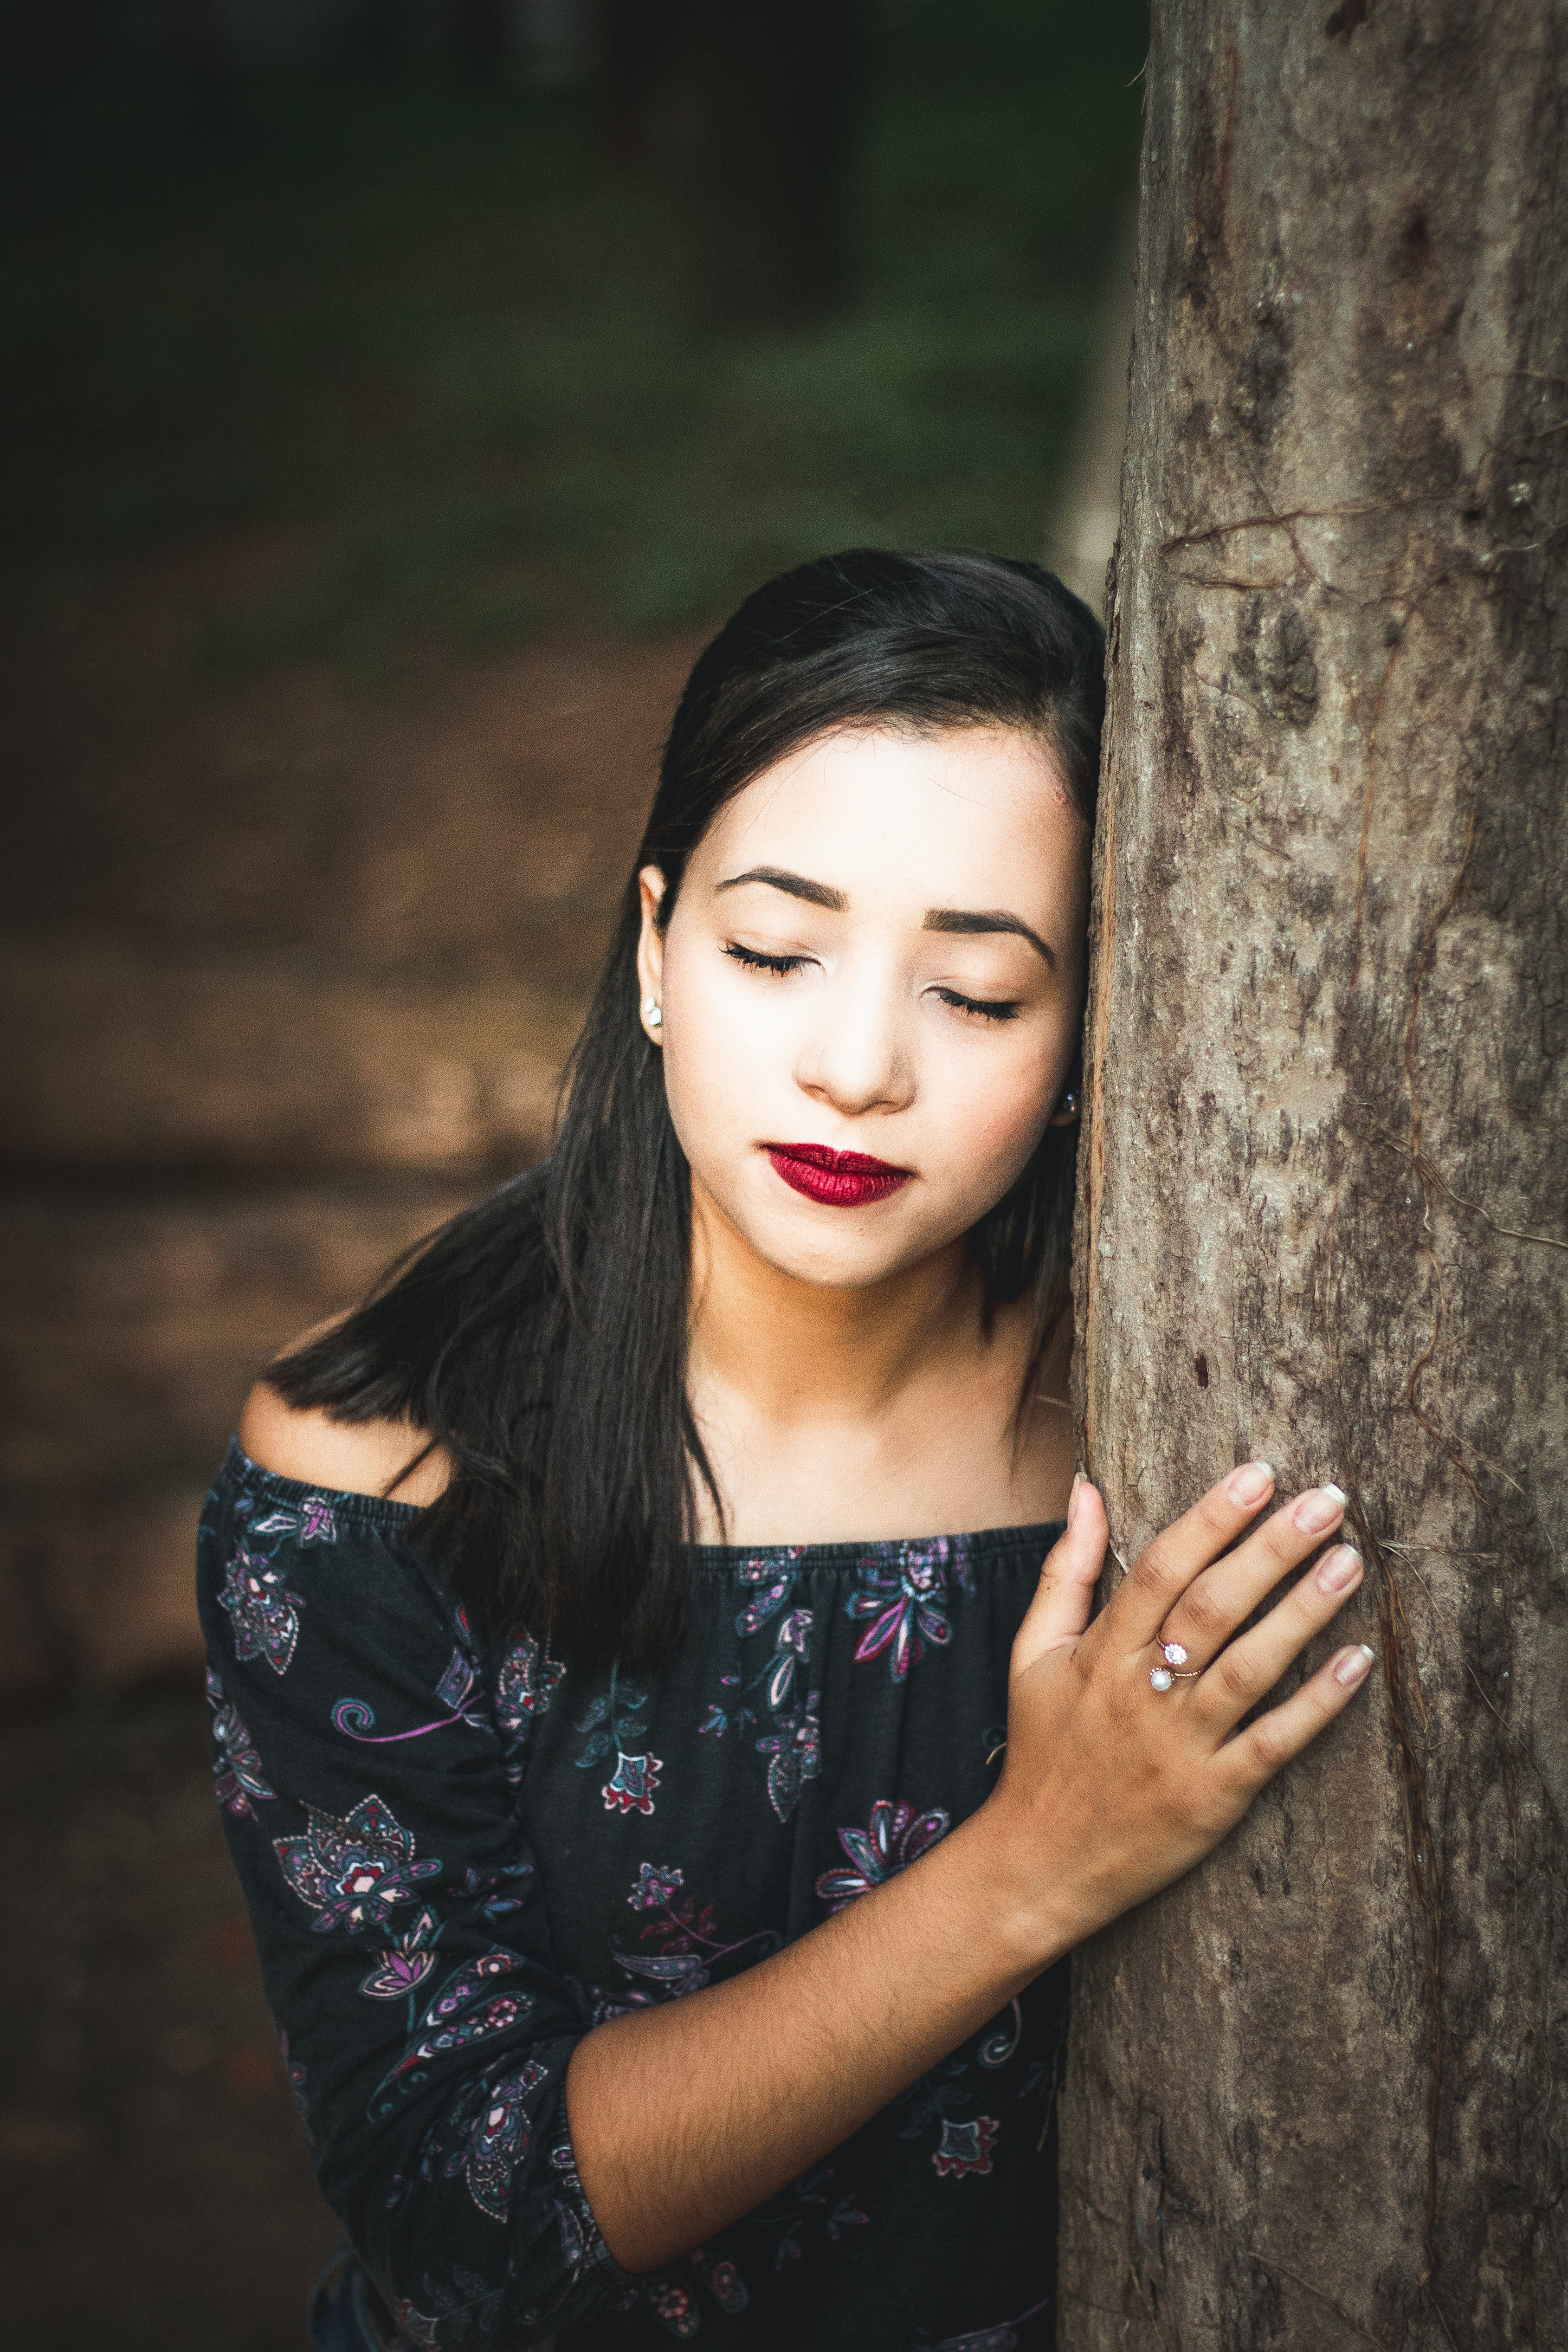 Woman Wearing Black Floral Off-shoulder Top Leaning on Tree Trunk